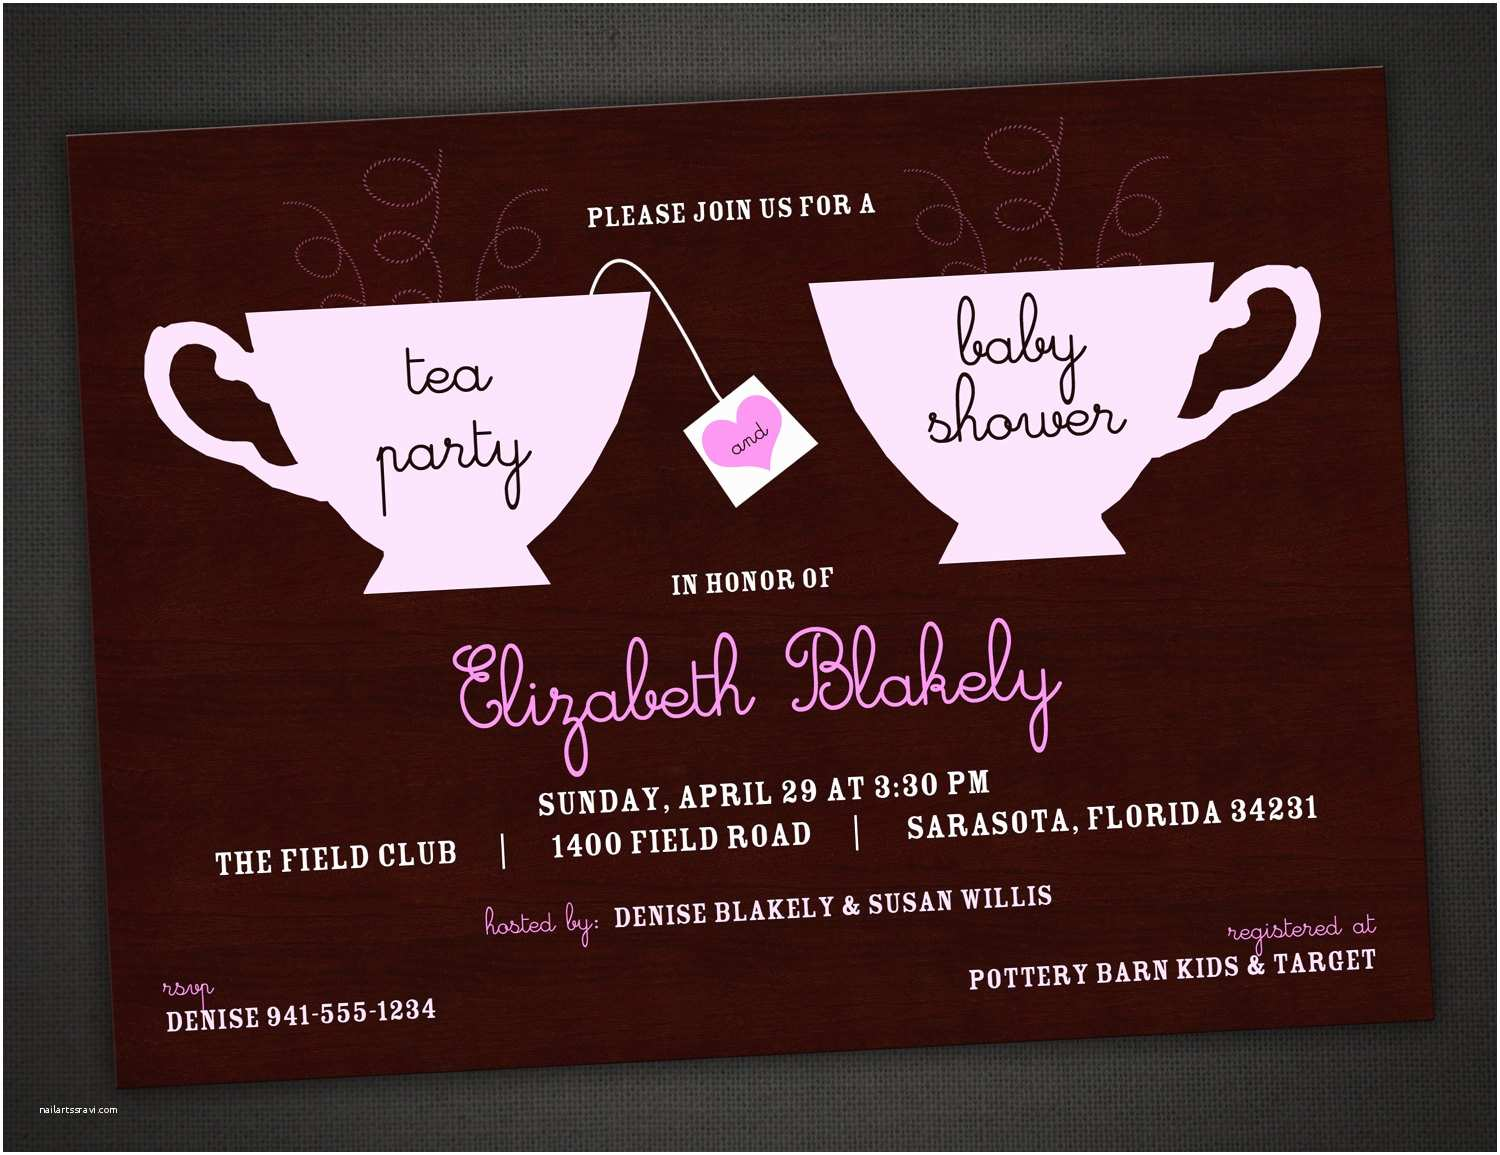 Baby Shower Tea Party Invitations Printed Invitation Tea Party Baby Shower by Idesignthat On